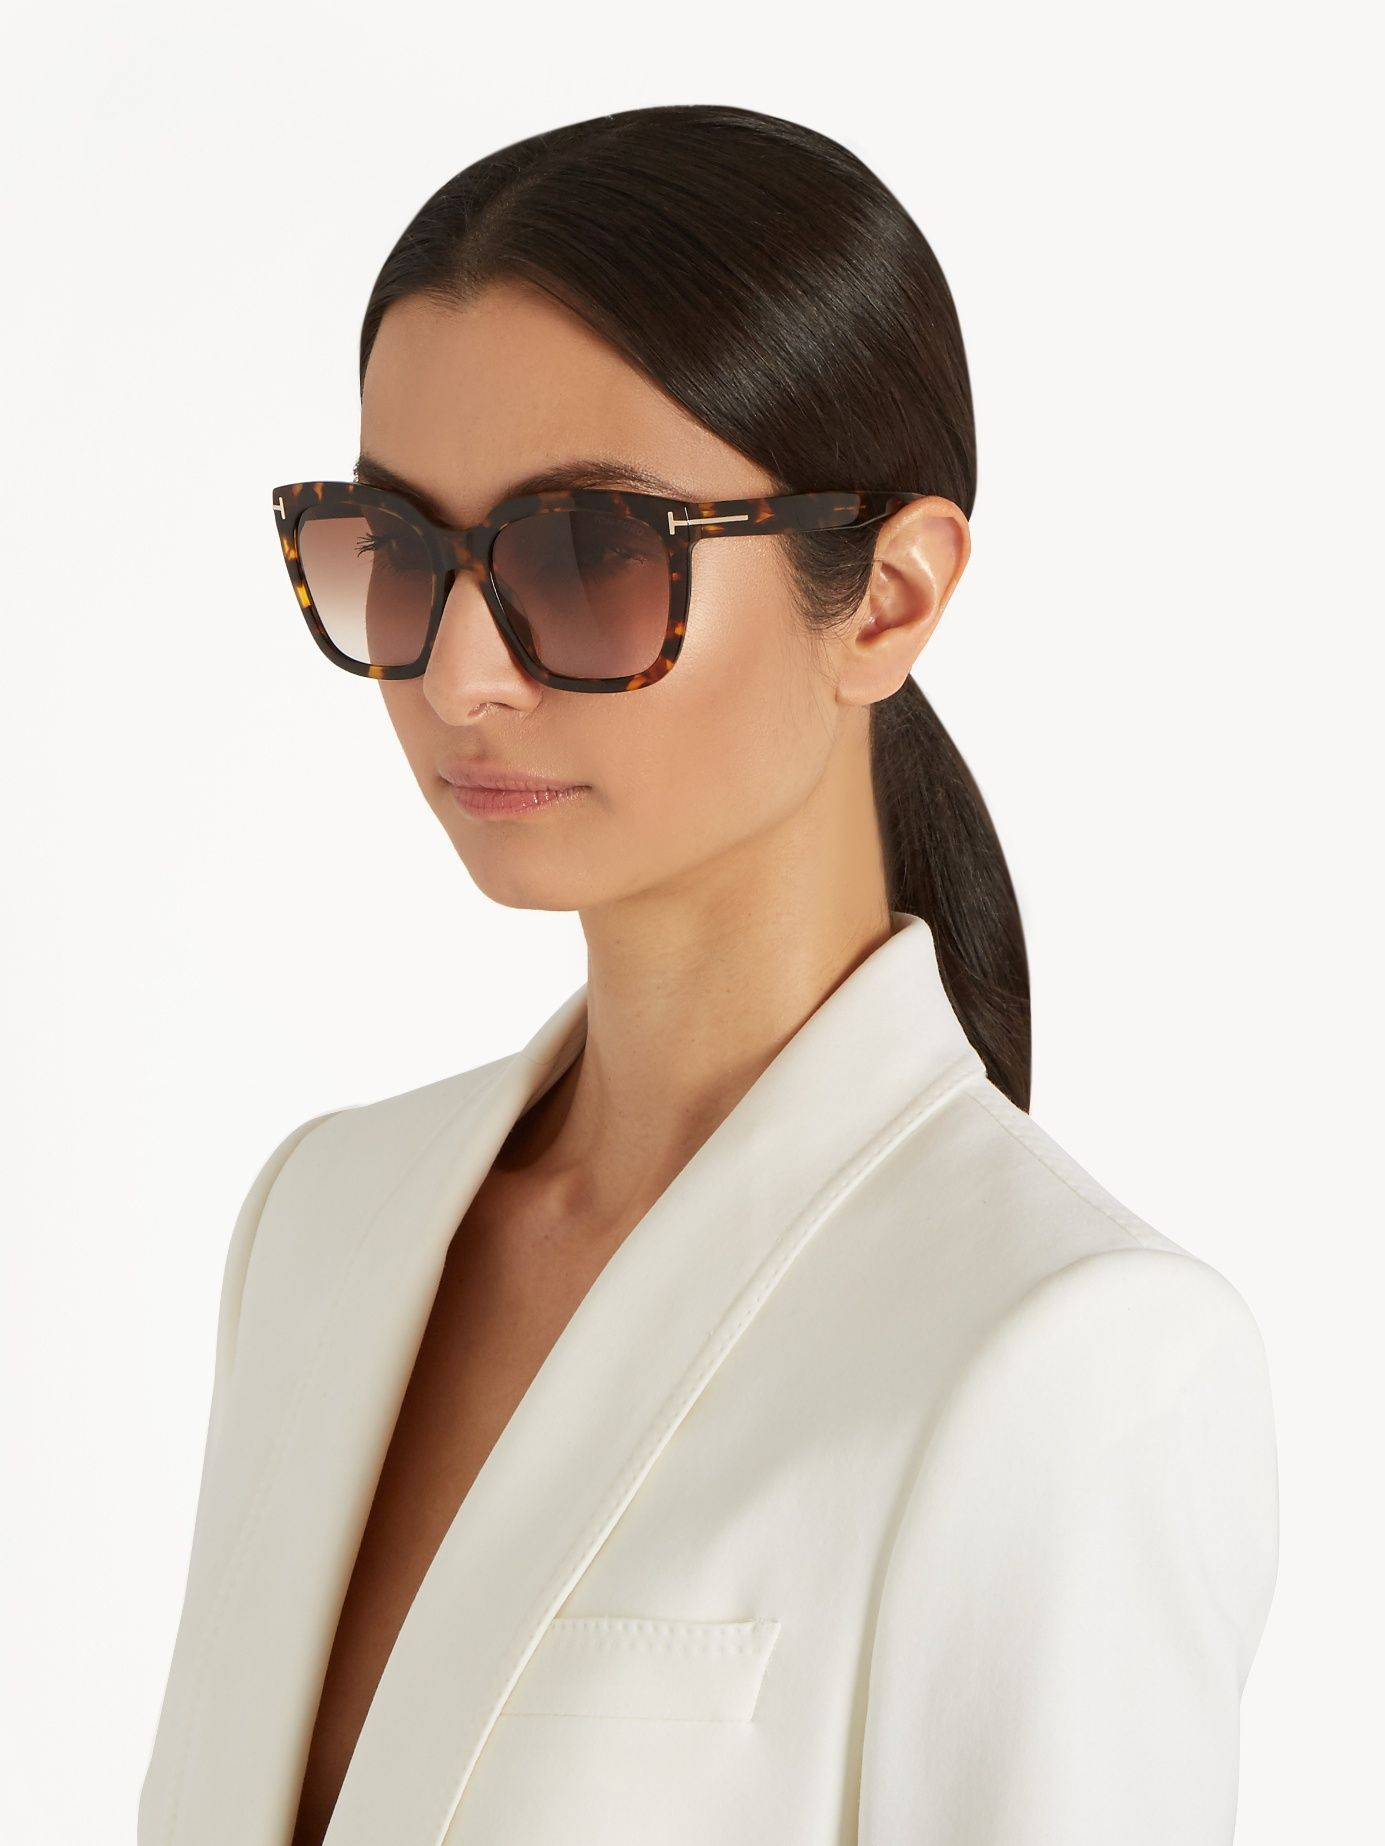 c57947ce49 Click here to buy Tom Ford Eyewear Amarra acetate sunglasses at  MATCHESFASHION.COM